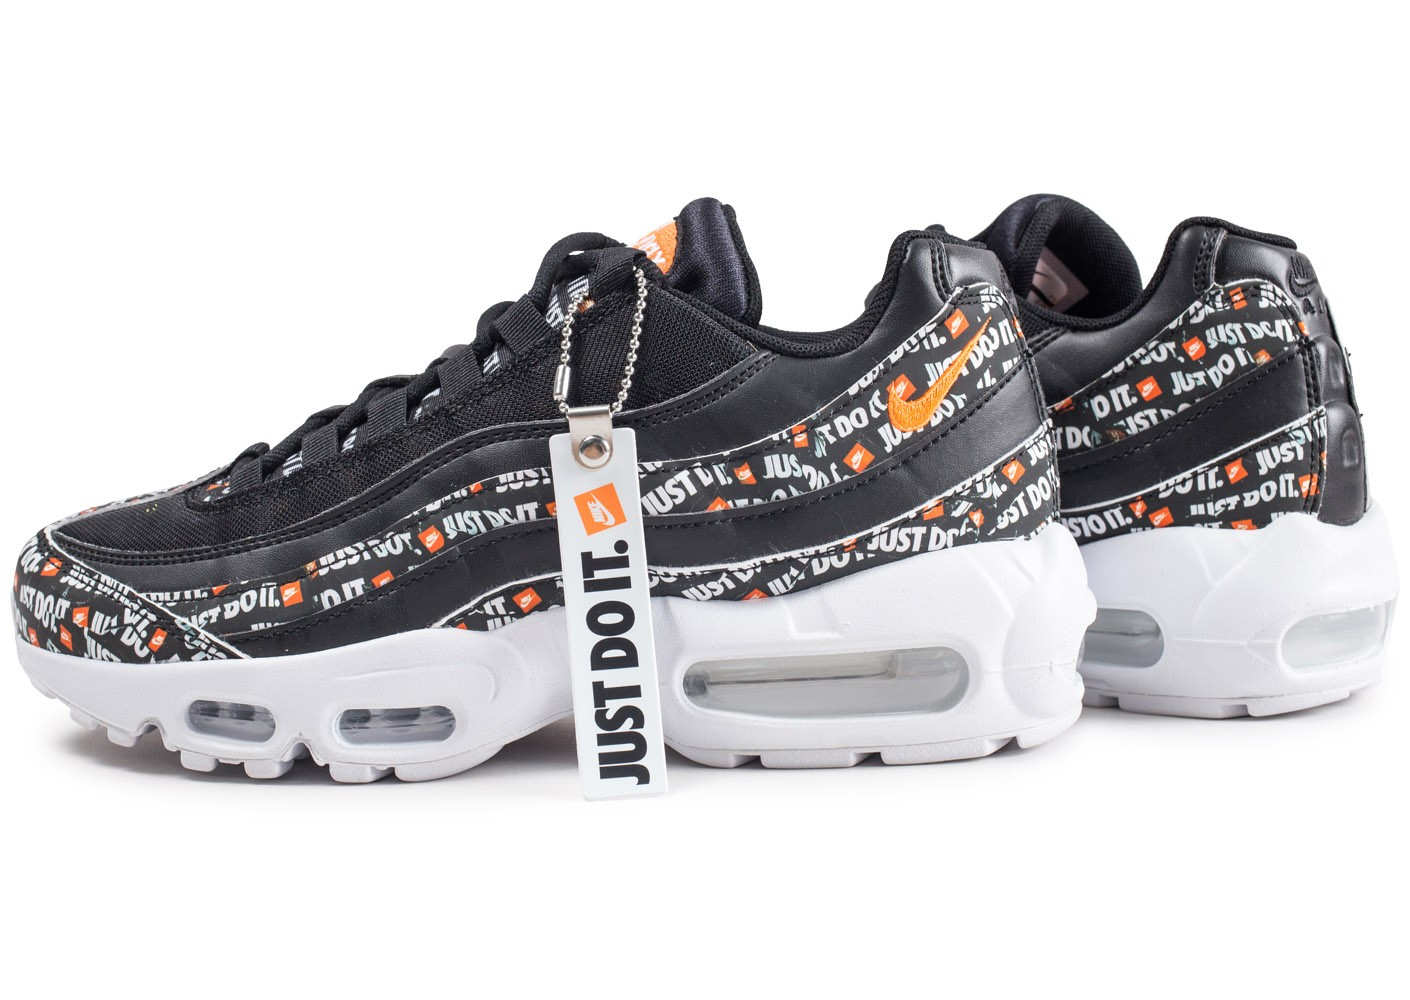 Nike Air Max 95 Just Do It noire Chaussures Baskets homme